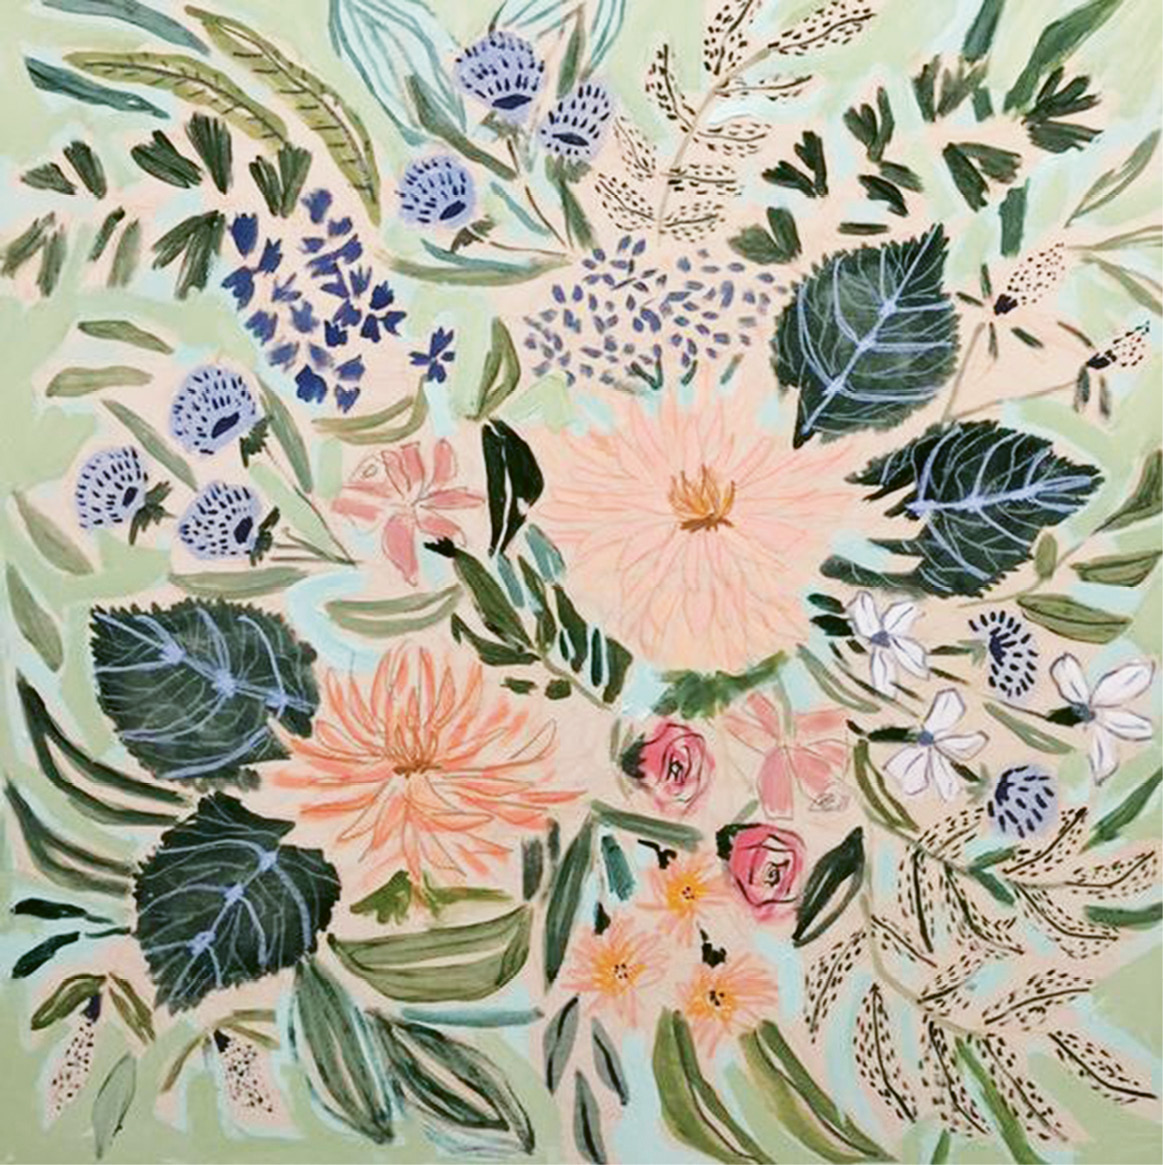 Painting (Flowers for Kate by Lulie Wallace, acrylic on canvas, 36 x 36 inches), $1,300 at luliewallace.com